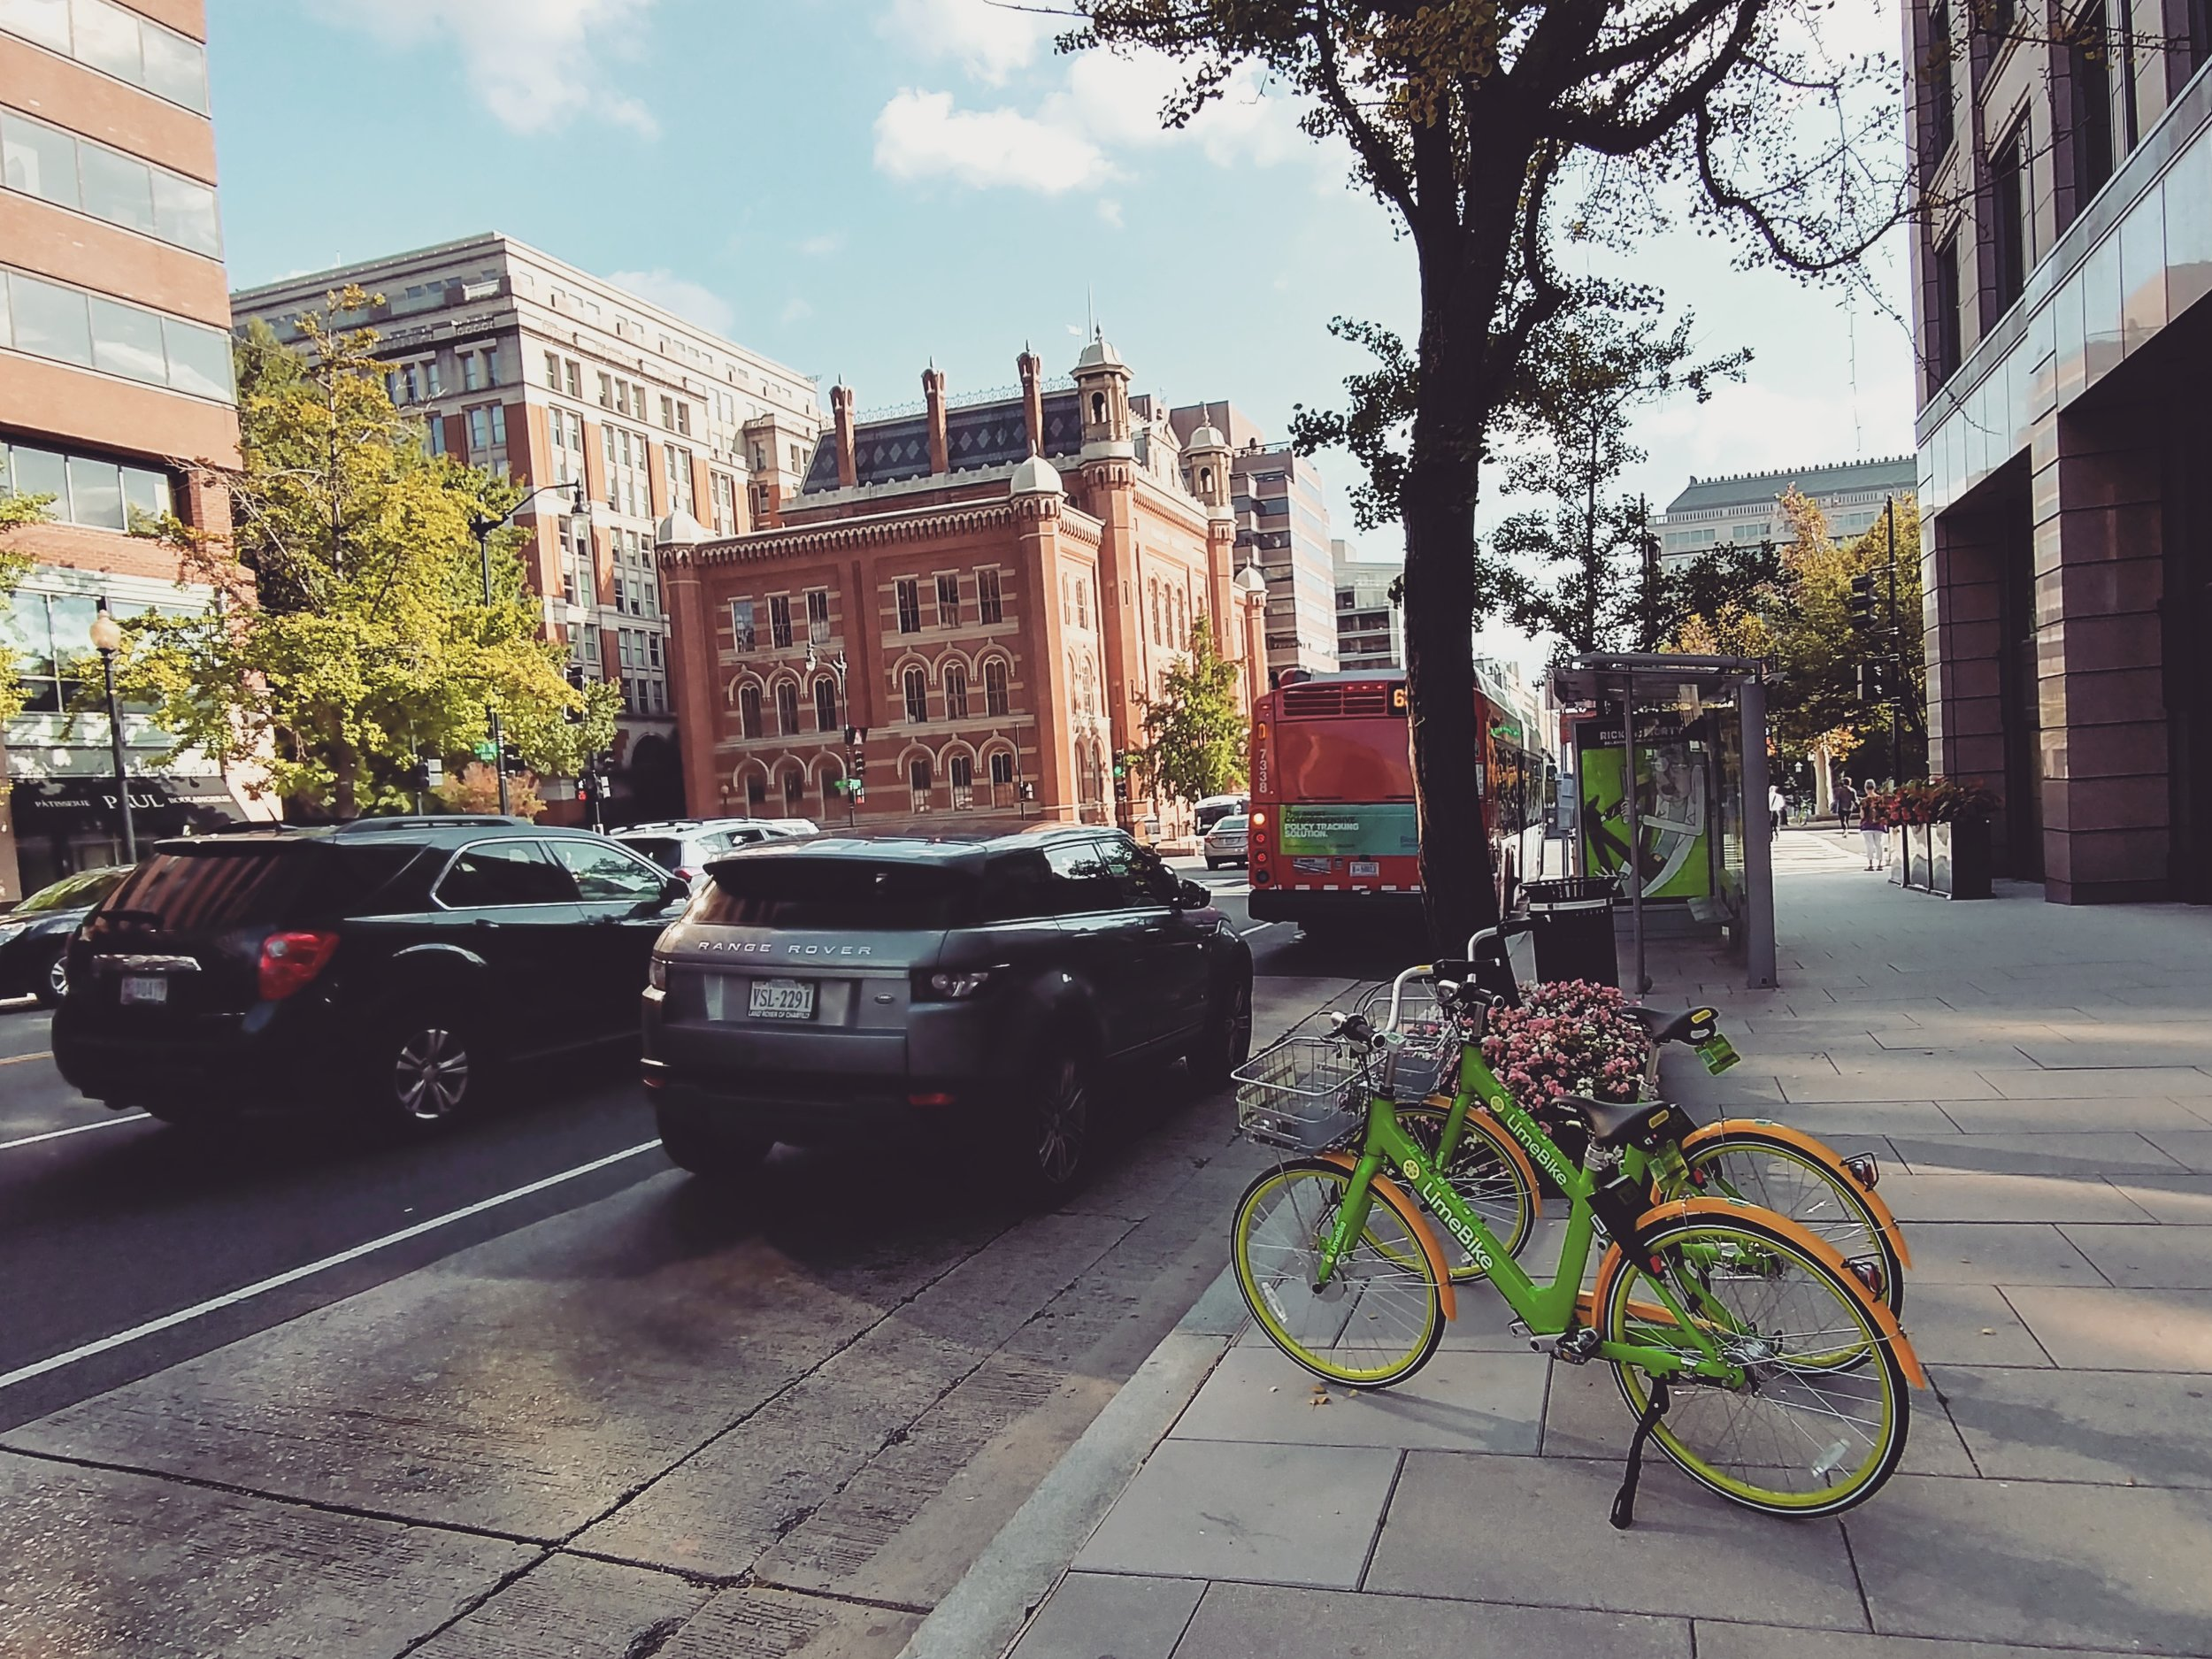 LimeBike is one of four shared biek companies participating in a new pilot program in DC.